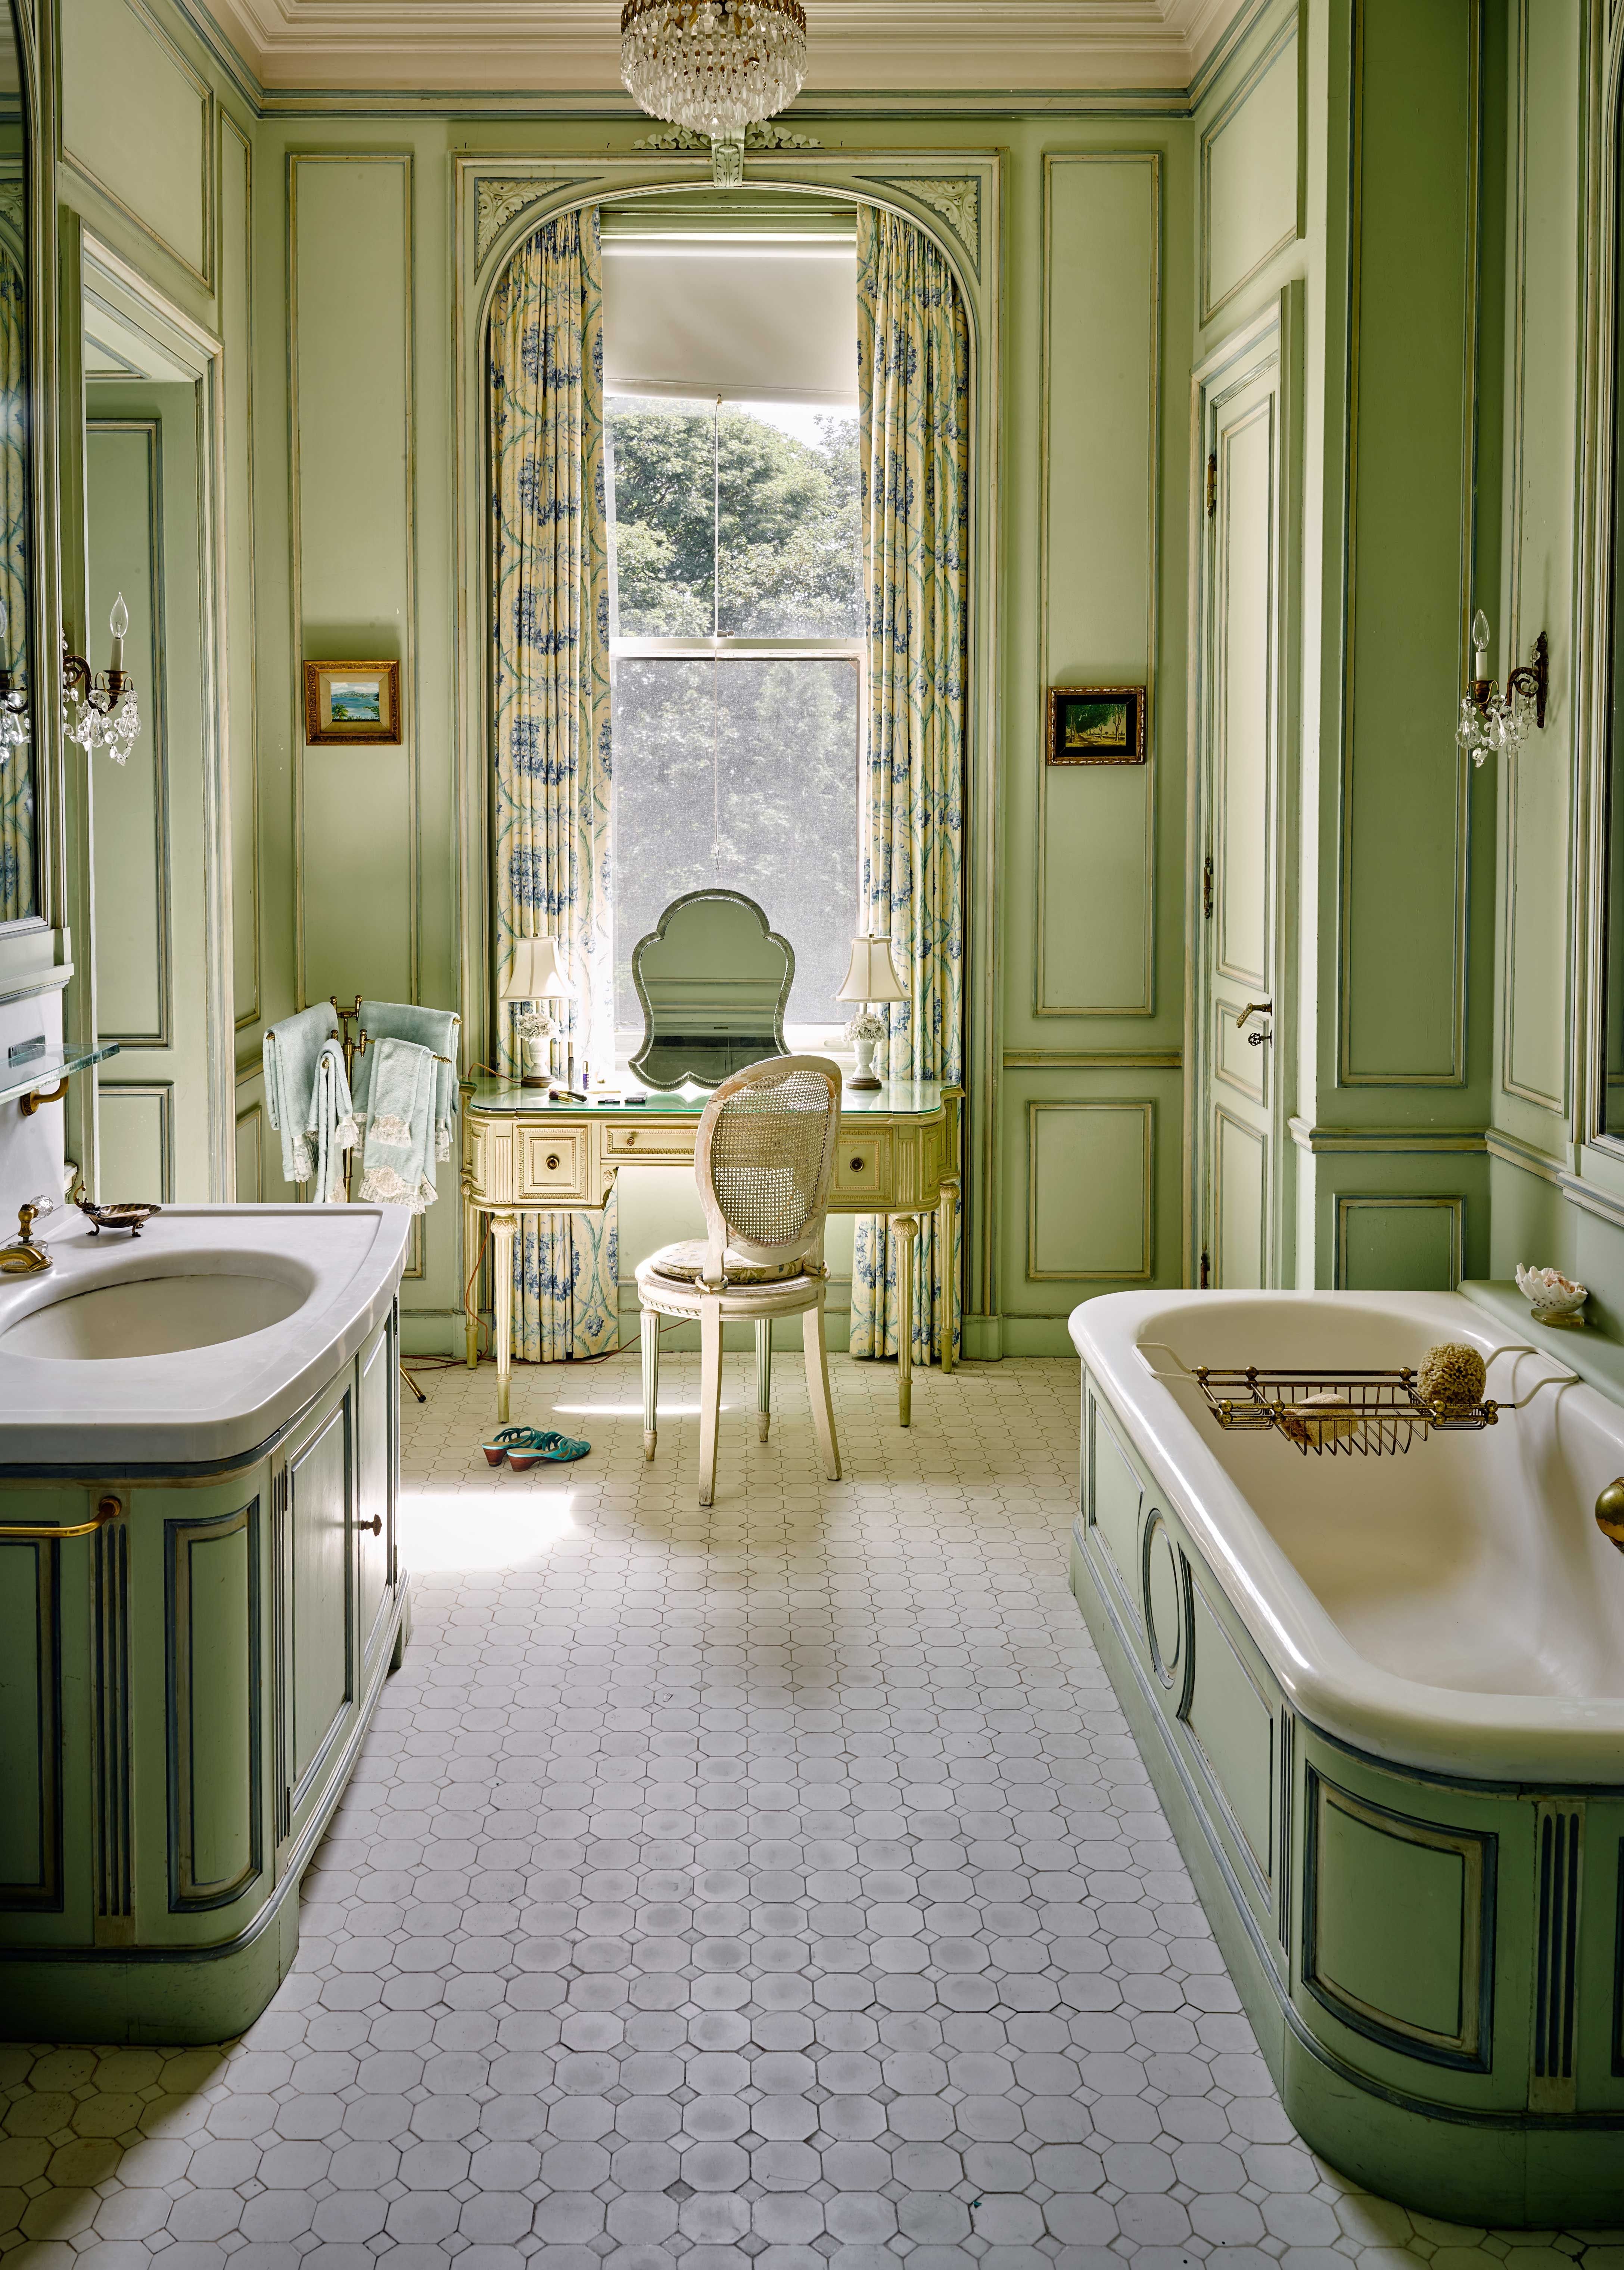 bathroom, white tiles, light green wall wainscoting, chandelier, white tub, green cabinet, make up table